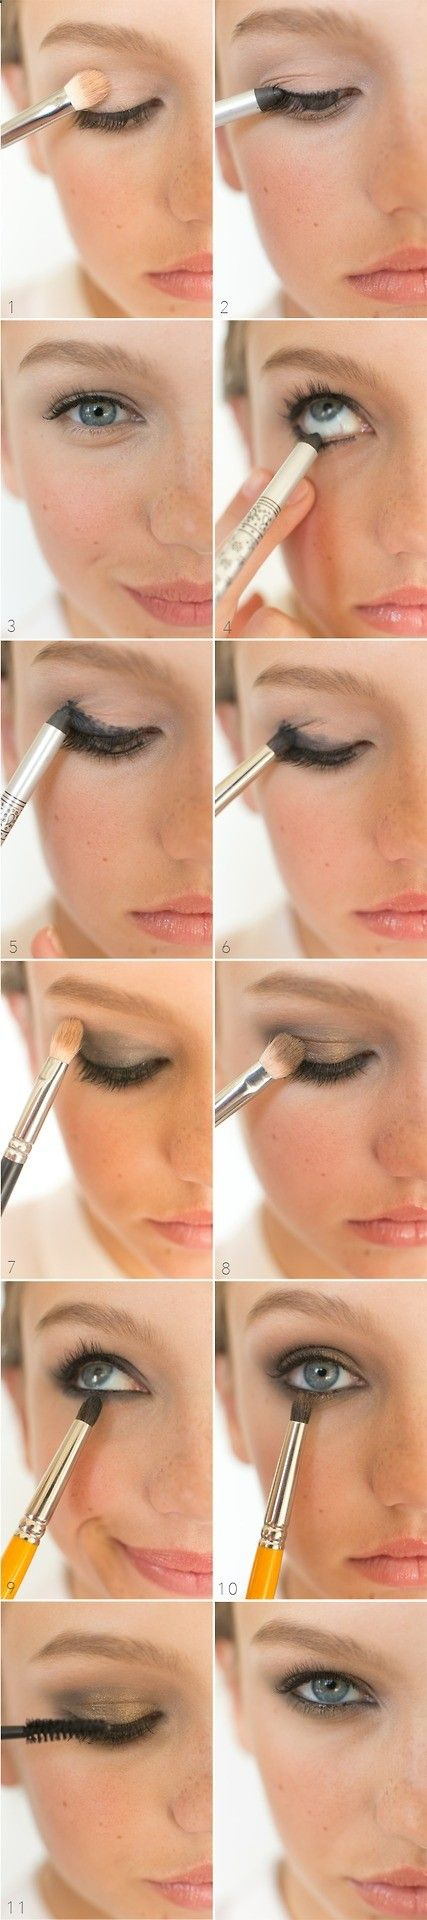 makeup to cover skin imperfections smoldering smokey eyes 1 prep the whole eyelid and - Peinture Qui Masque Les Imperfections